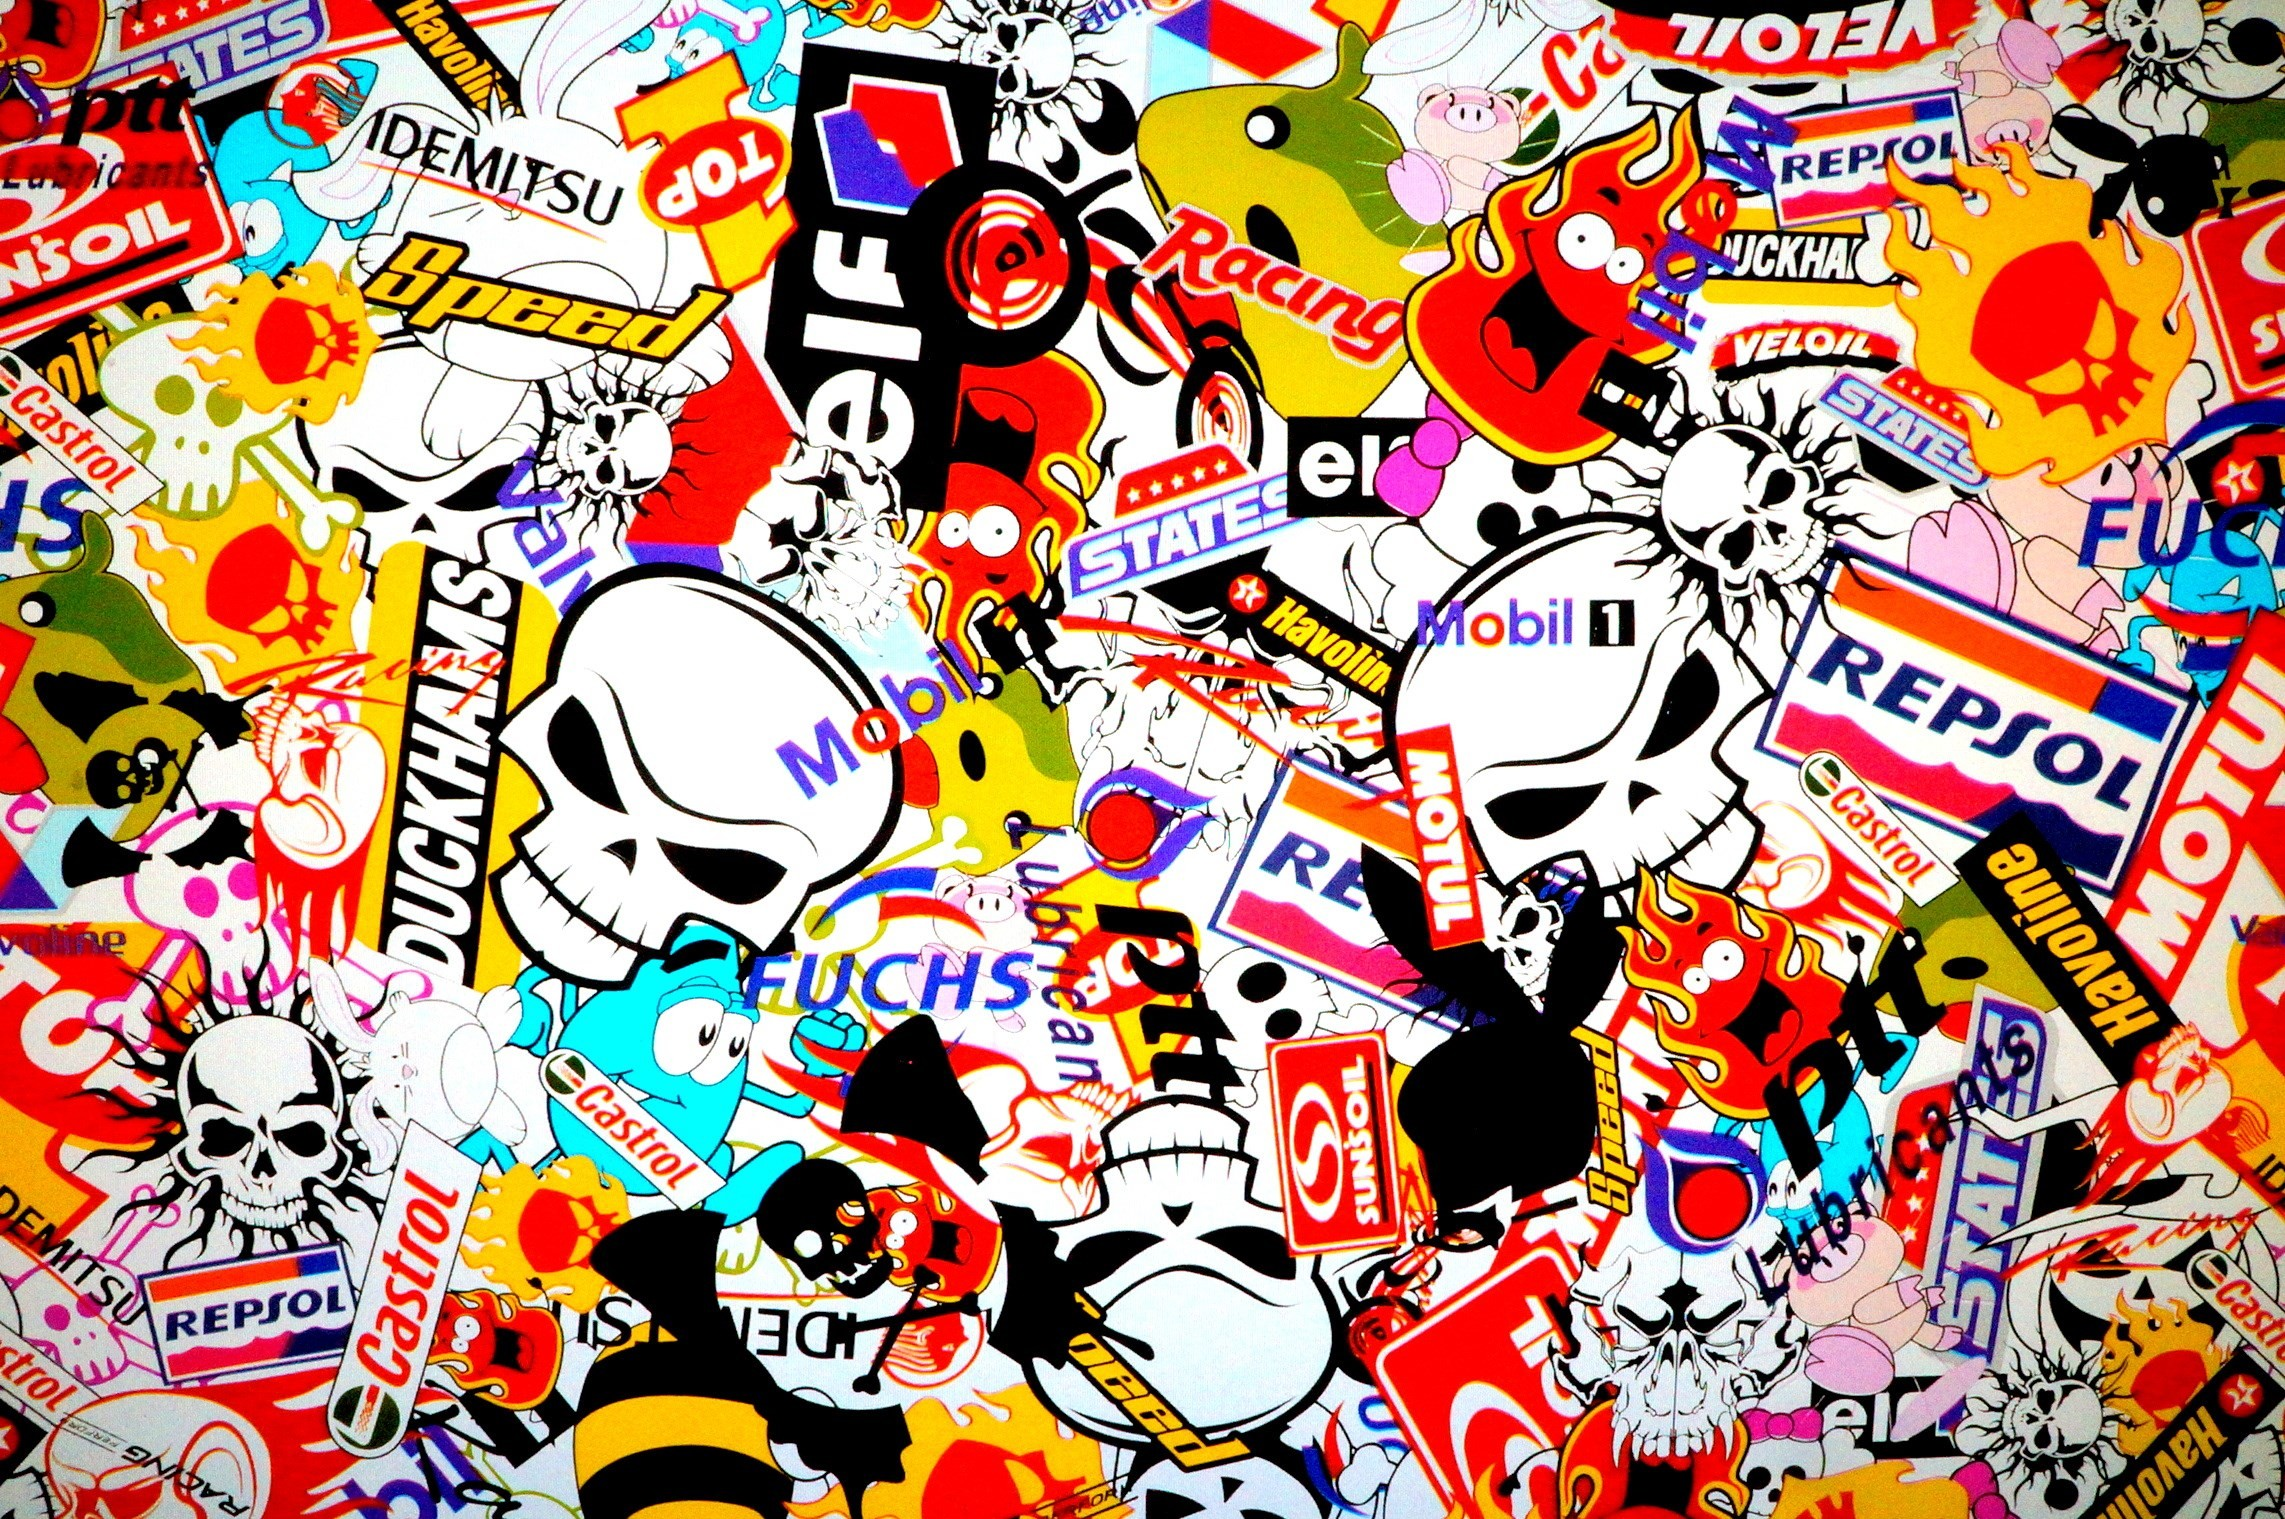 wallpaper images sticker bomb – sticker bomb category